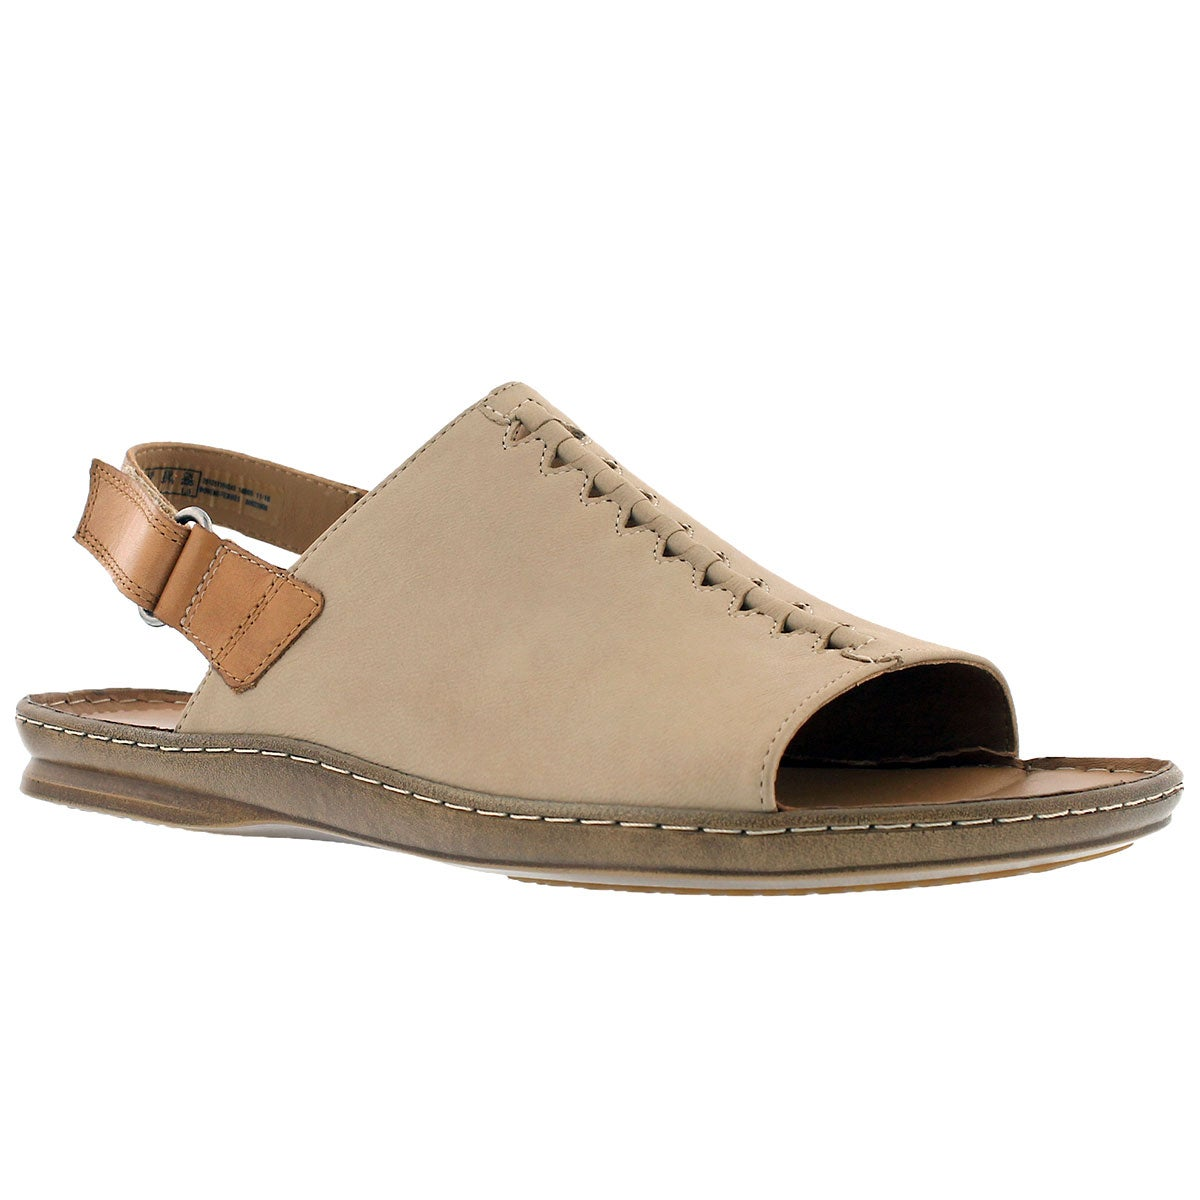 Women's SARLA FORTE sand casual sandals